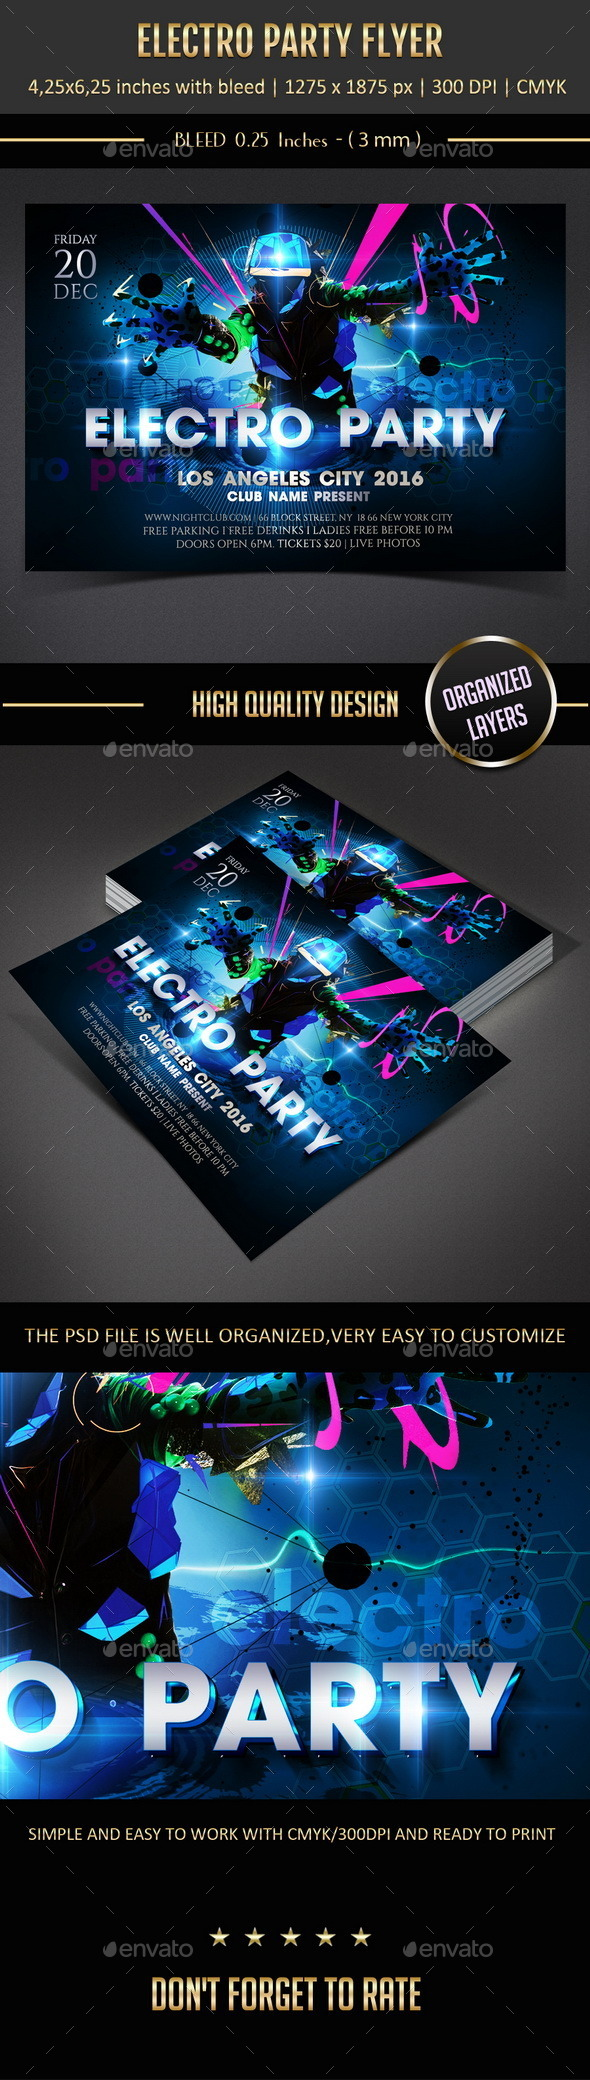 GraphicRiver Electro Party Flyer 11017200